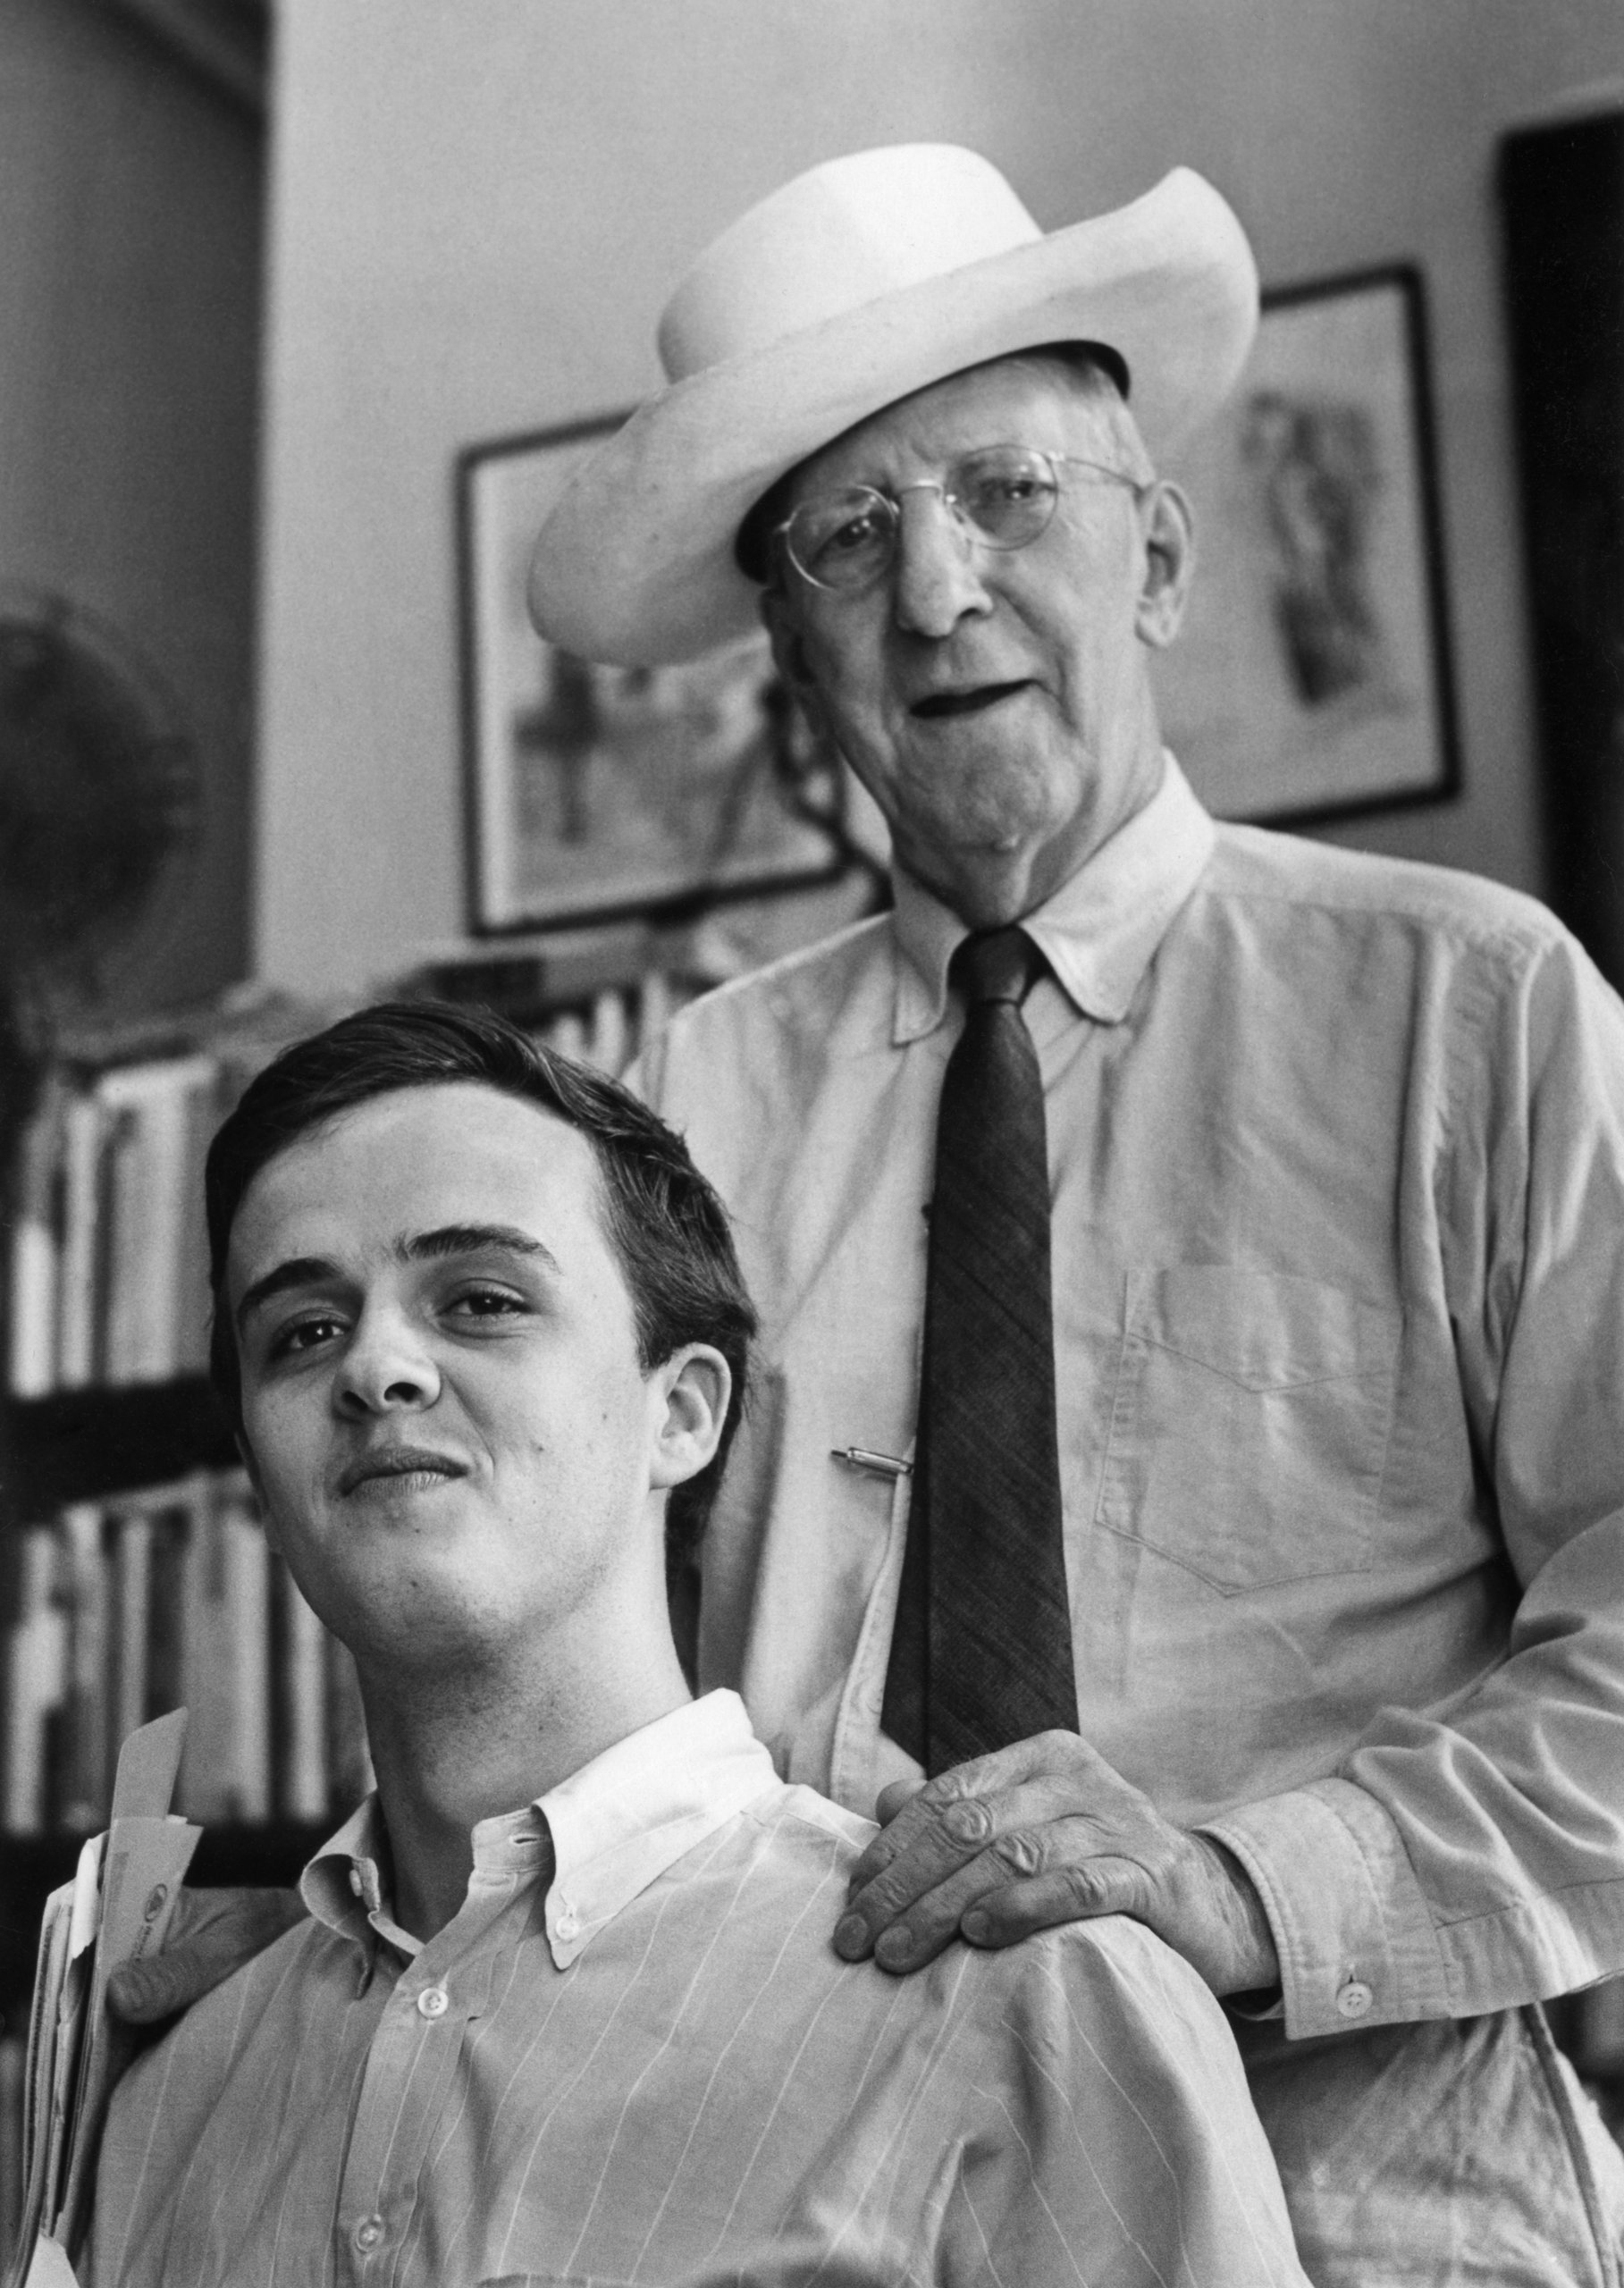 James Tate (left), Pulitzer Prize winner (1992) and MFA graduate of Iowa University , at the Grolier Book Store in 1965 with the owner, Gordon Cairnie. Photo by Elsa Dorfman.